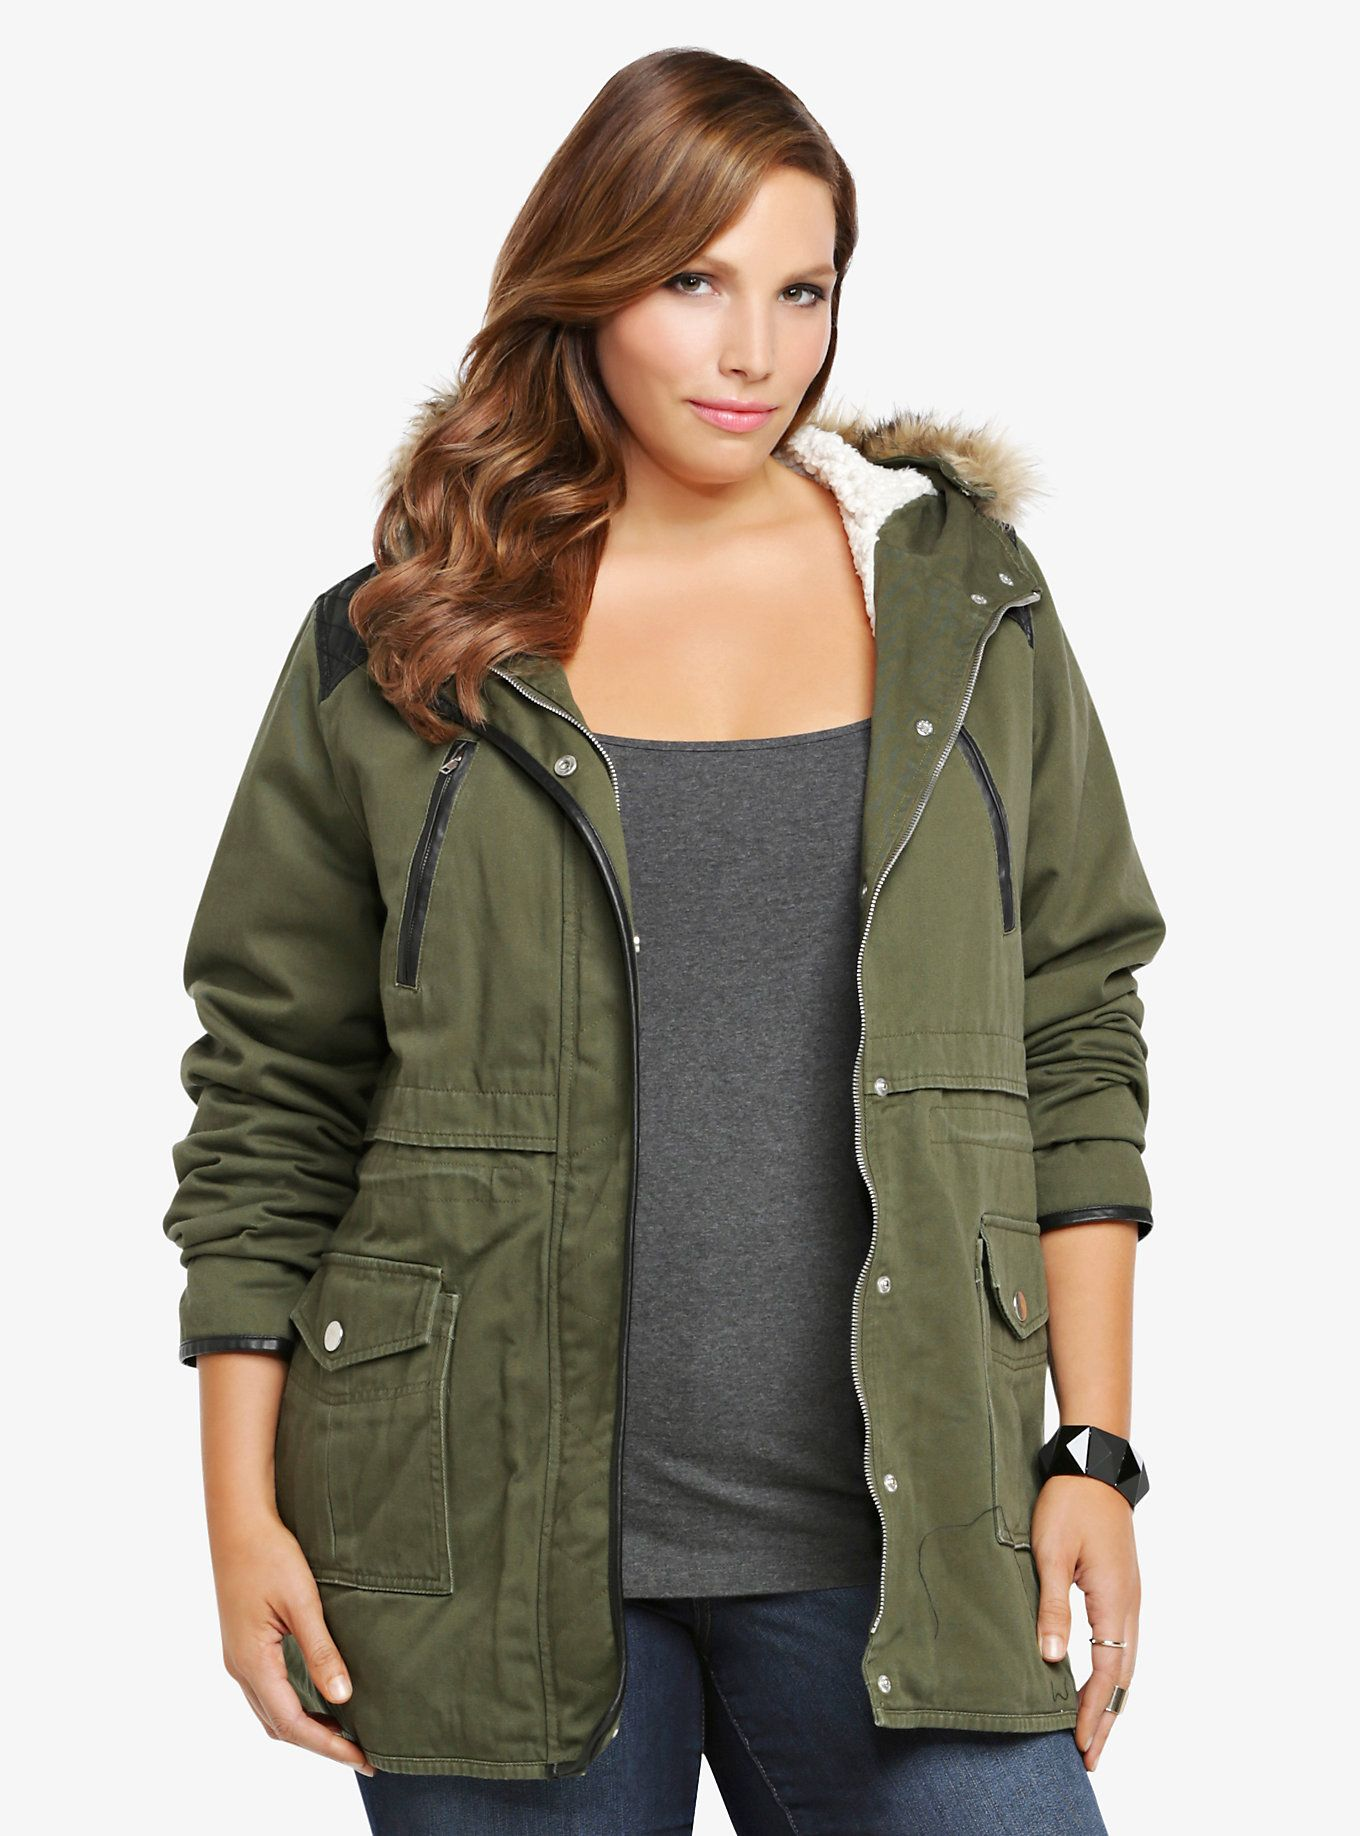 Sherpa Lined Twill Jacket Anorak jacket, Jackets, Torrid